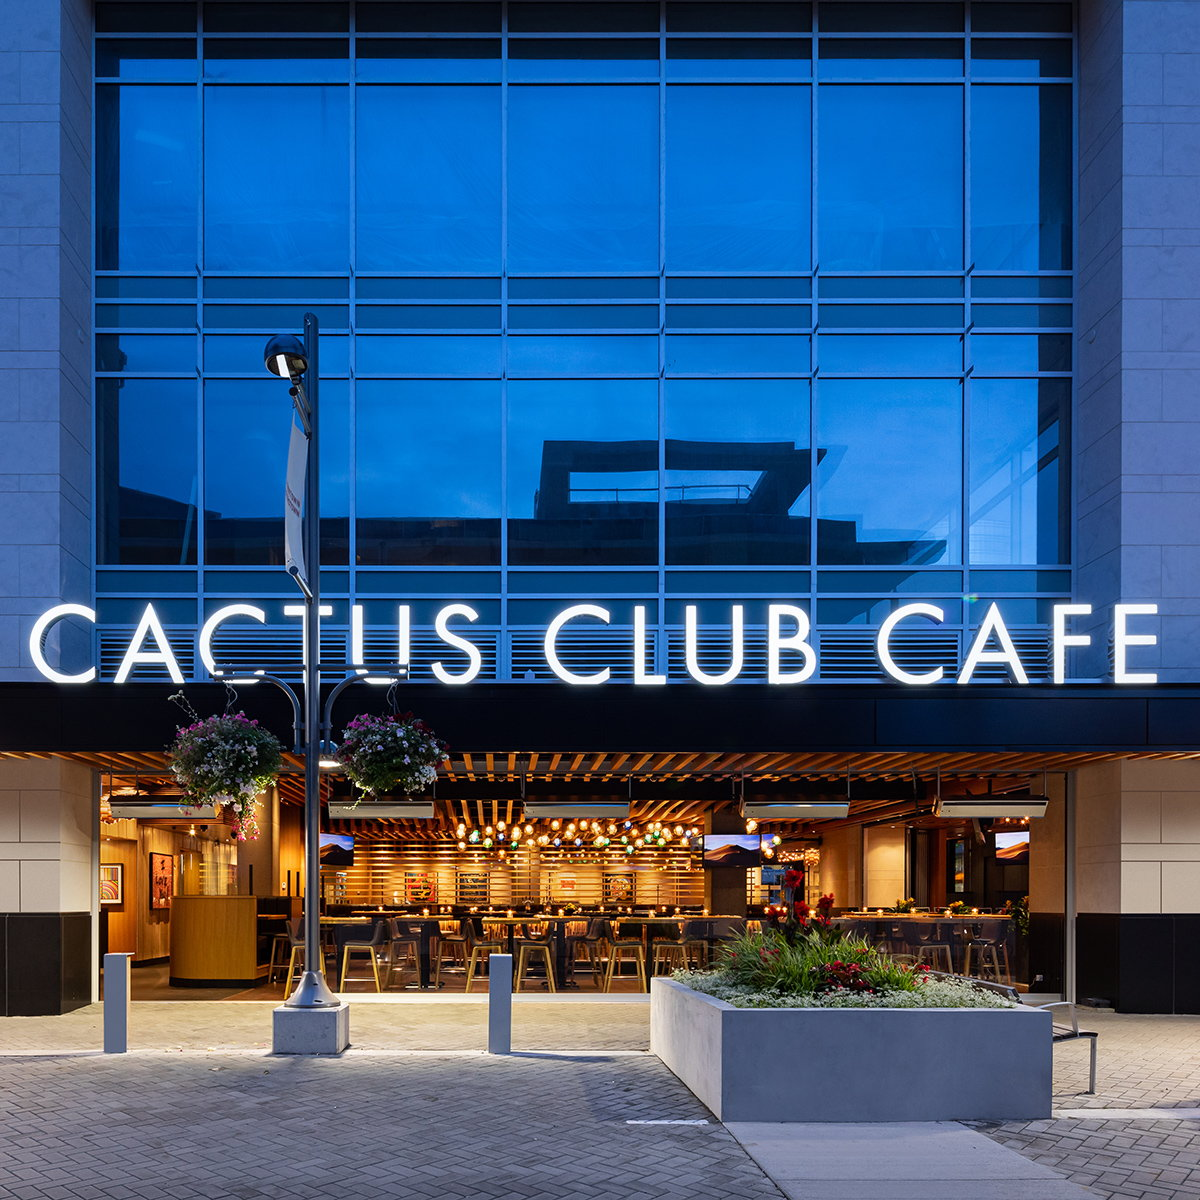 Cactus Club Café by Assembledge+